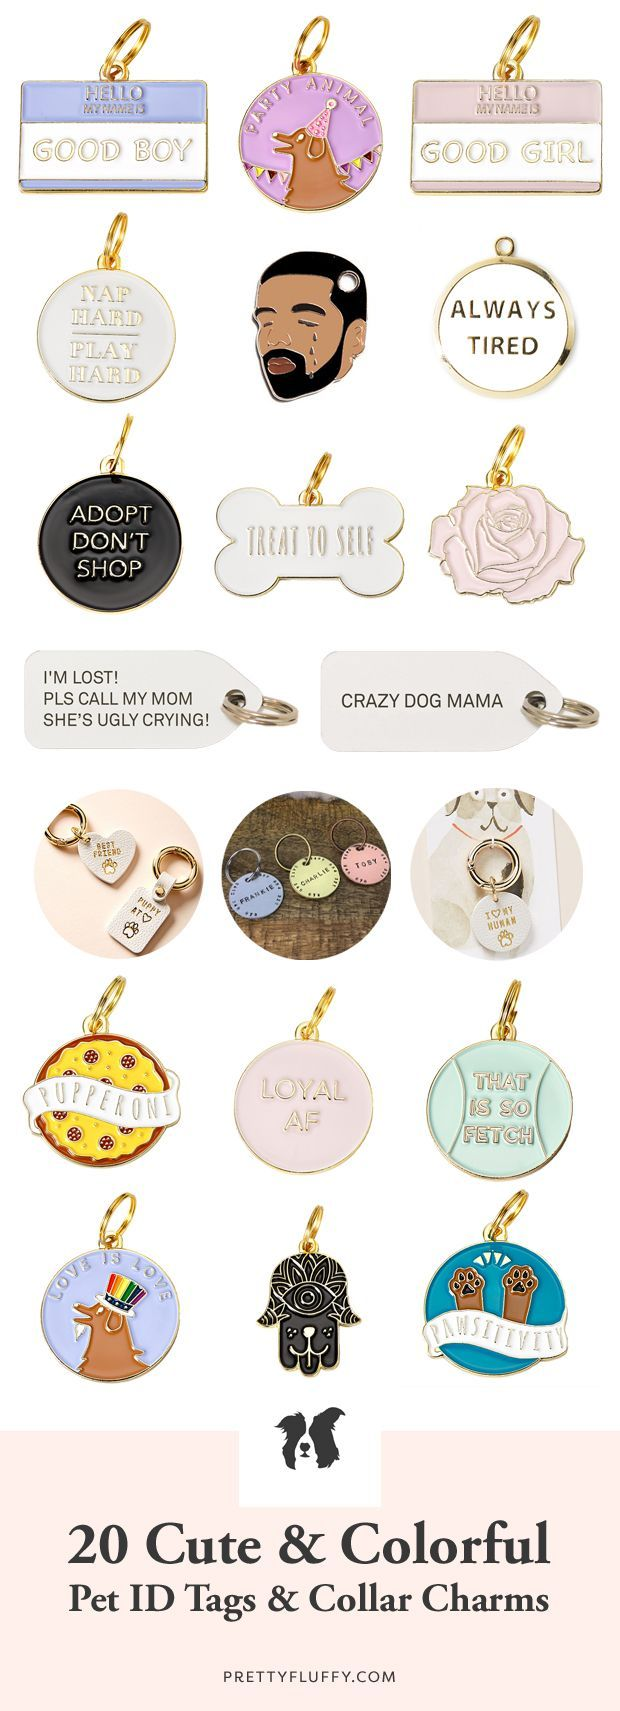 20 Cute & Colorful Pet ID Tags & Dog Collar Charms, #Charms #Collar #colorful #cooldogcollar…